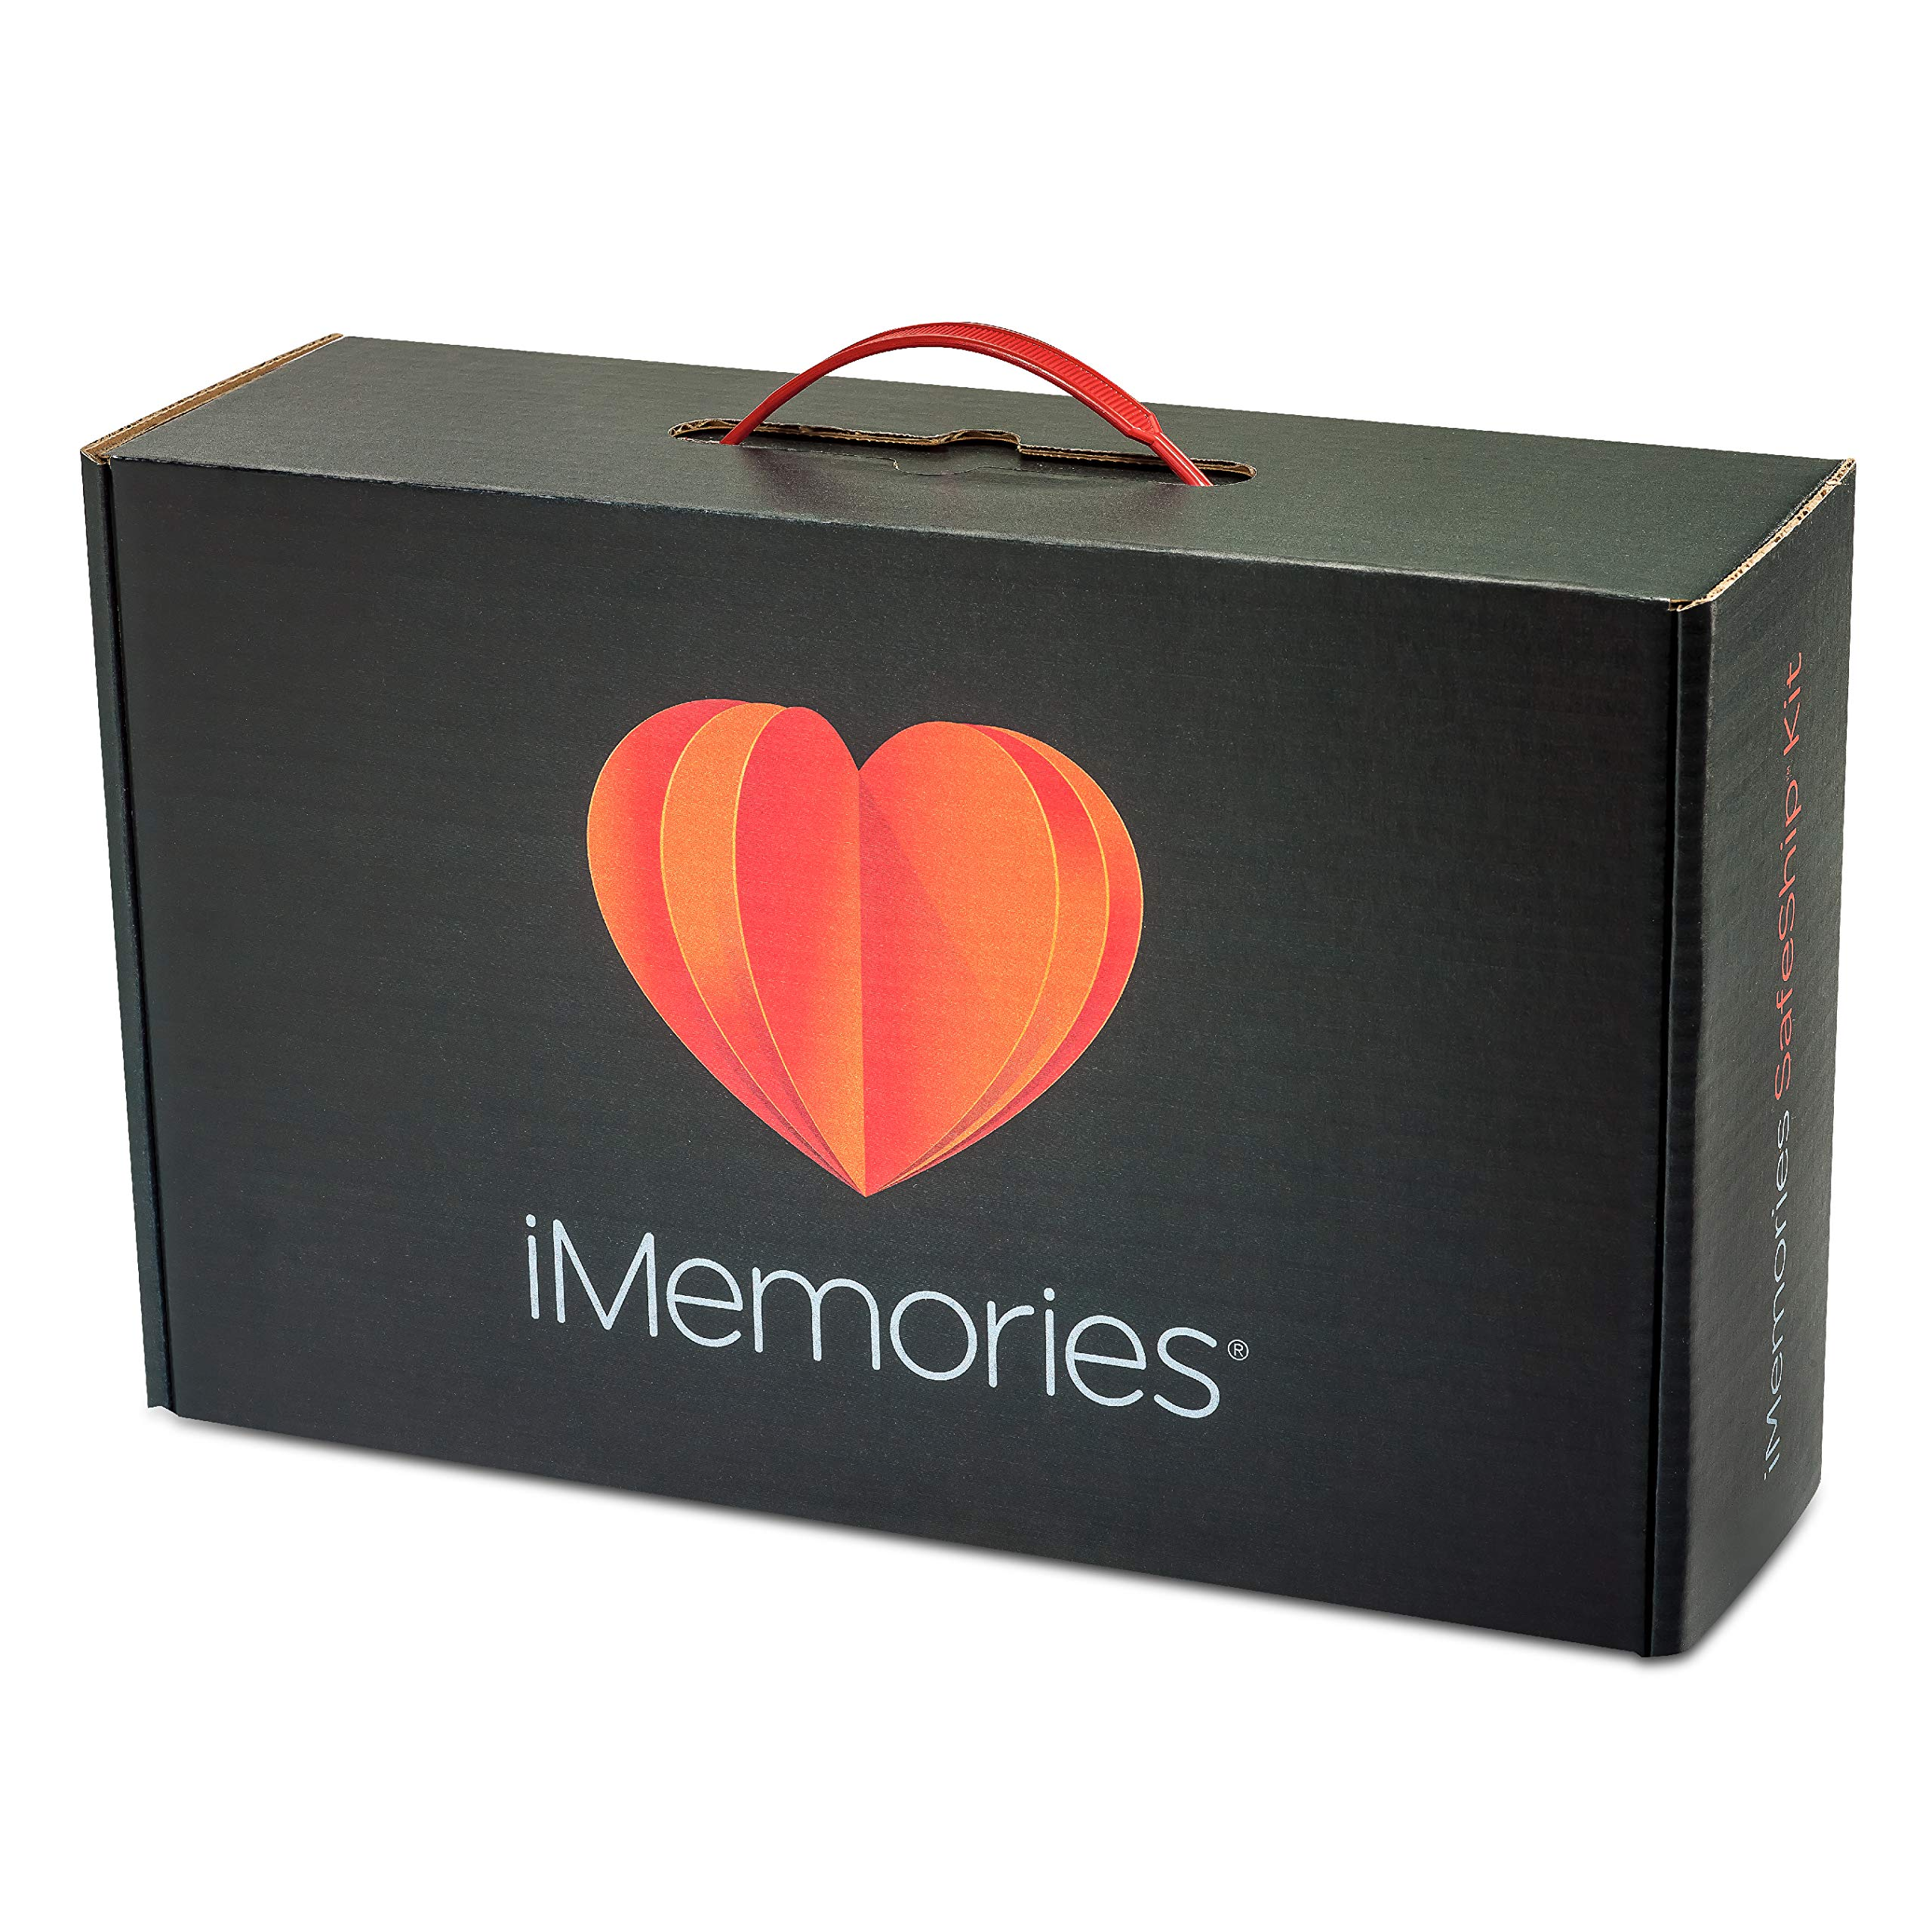 iMemories SafeShip Kit with $120 Conversion Reimbursement, Digitally Convert Your Family's Home Movies and Photos by iMemories